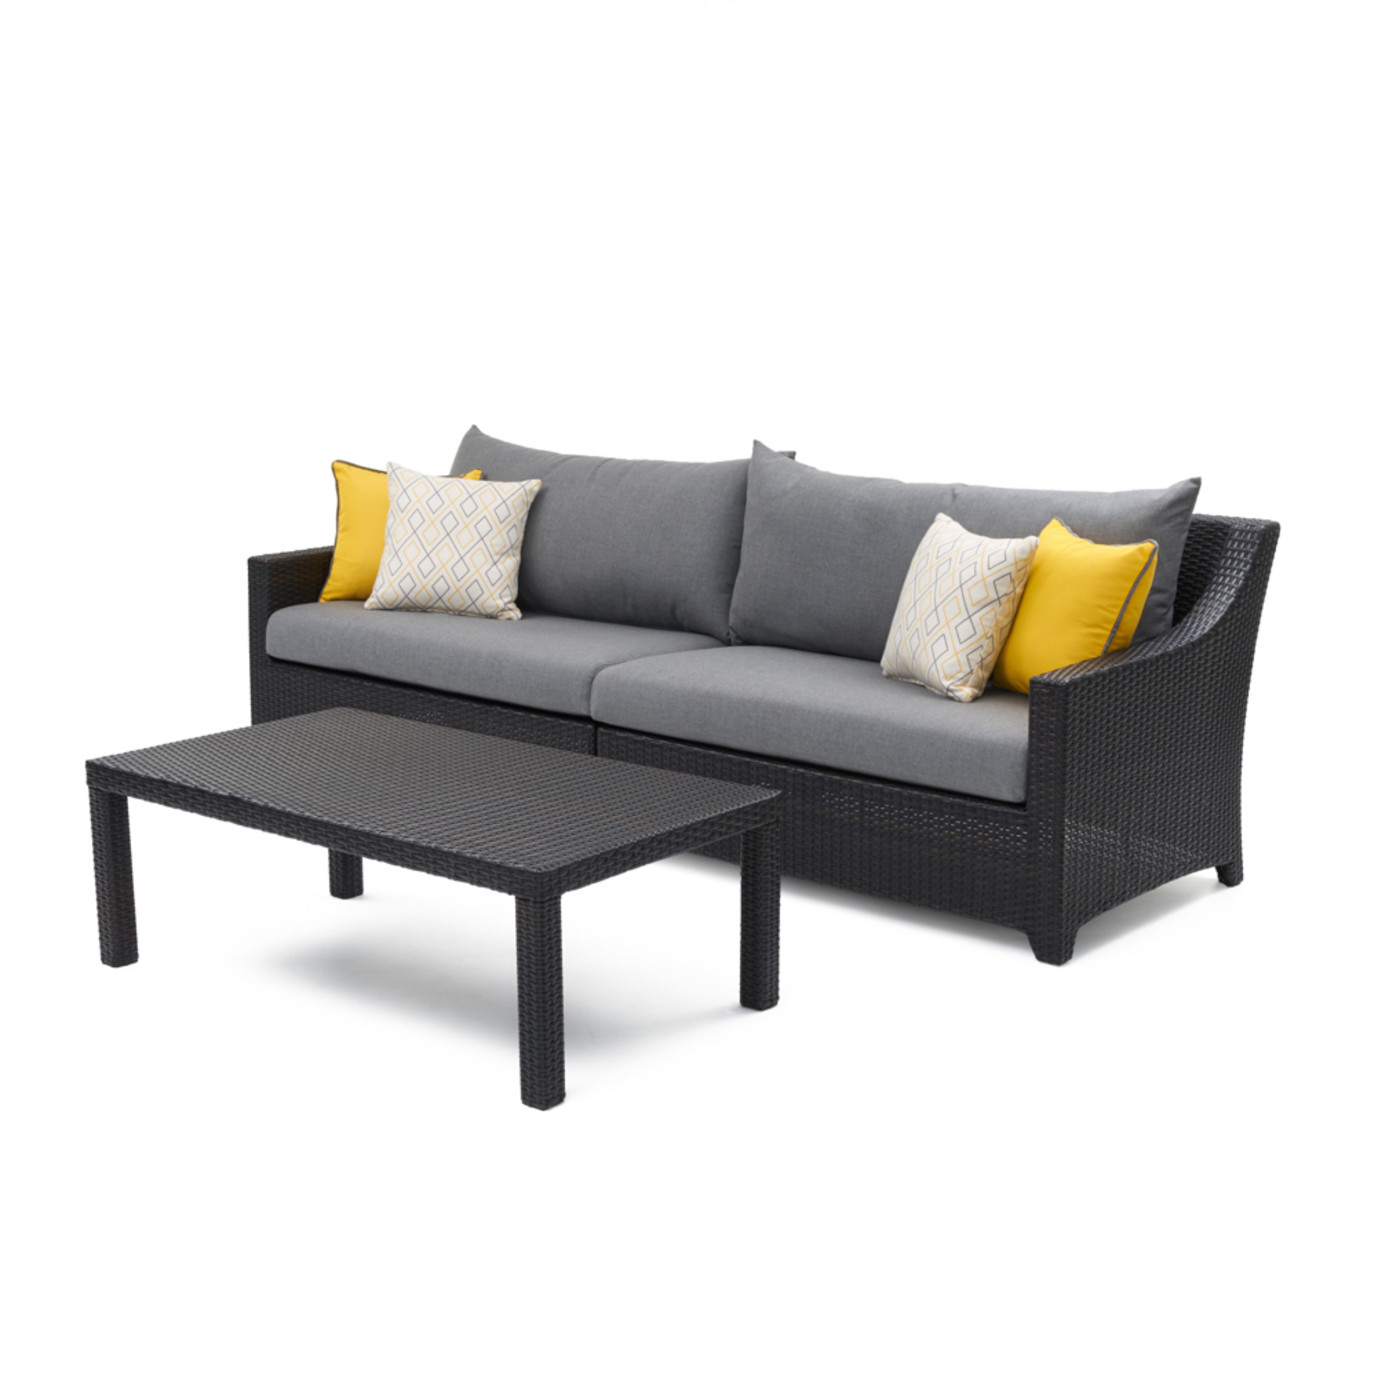 Deco sofa coffee table sunflower yellow rst brands for Sofa table yellow